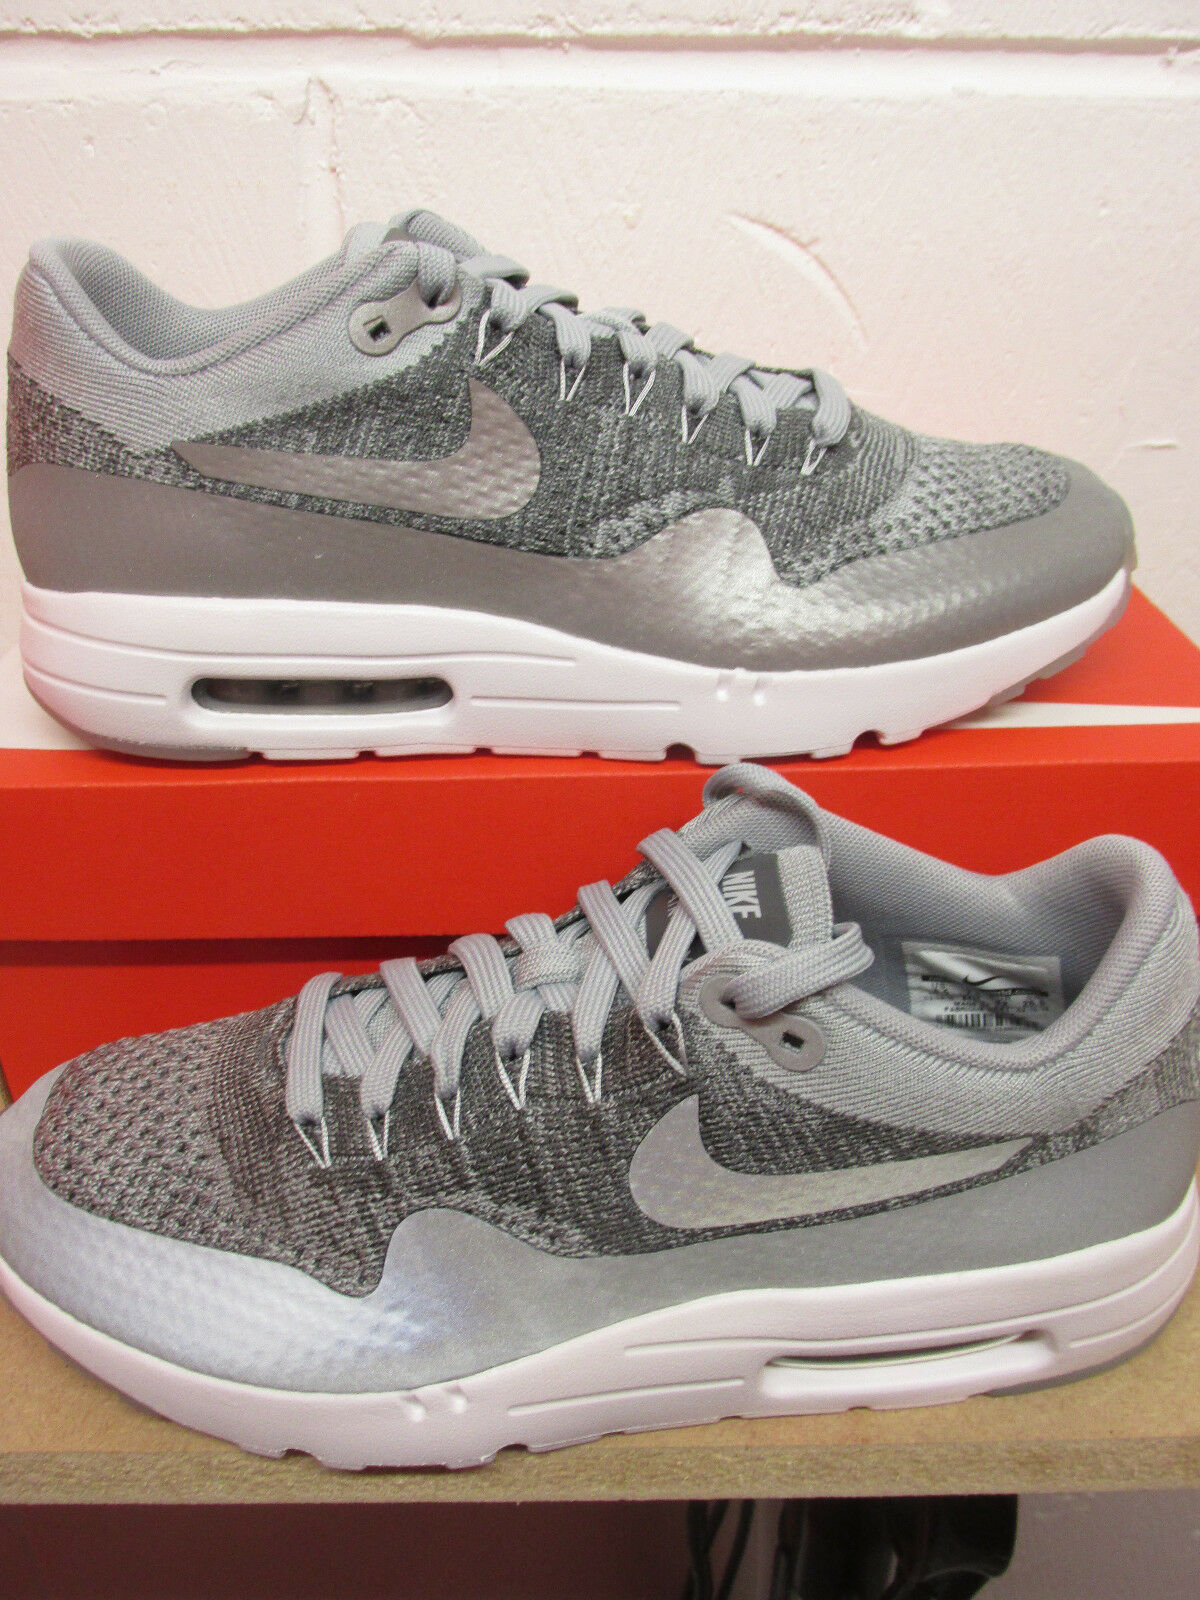 Nike Air Max 1 Ultra Flyknit Chaussure de Course pour Homme 843384 001 Baskets